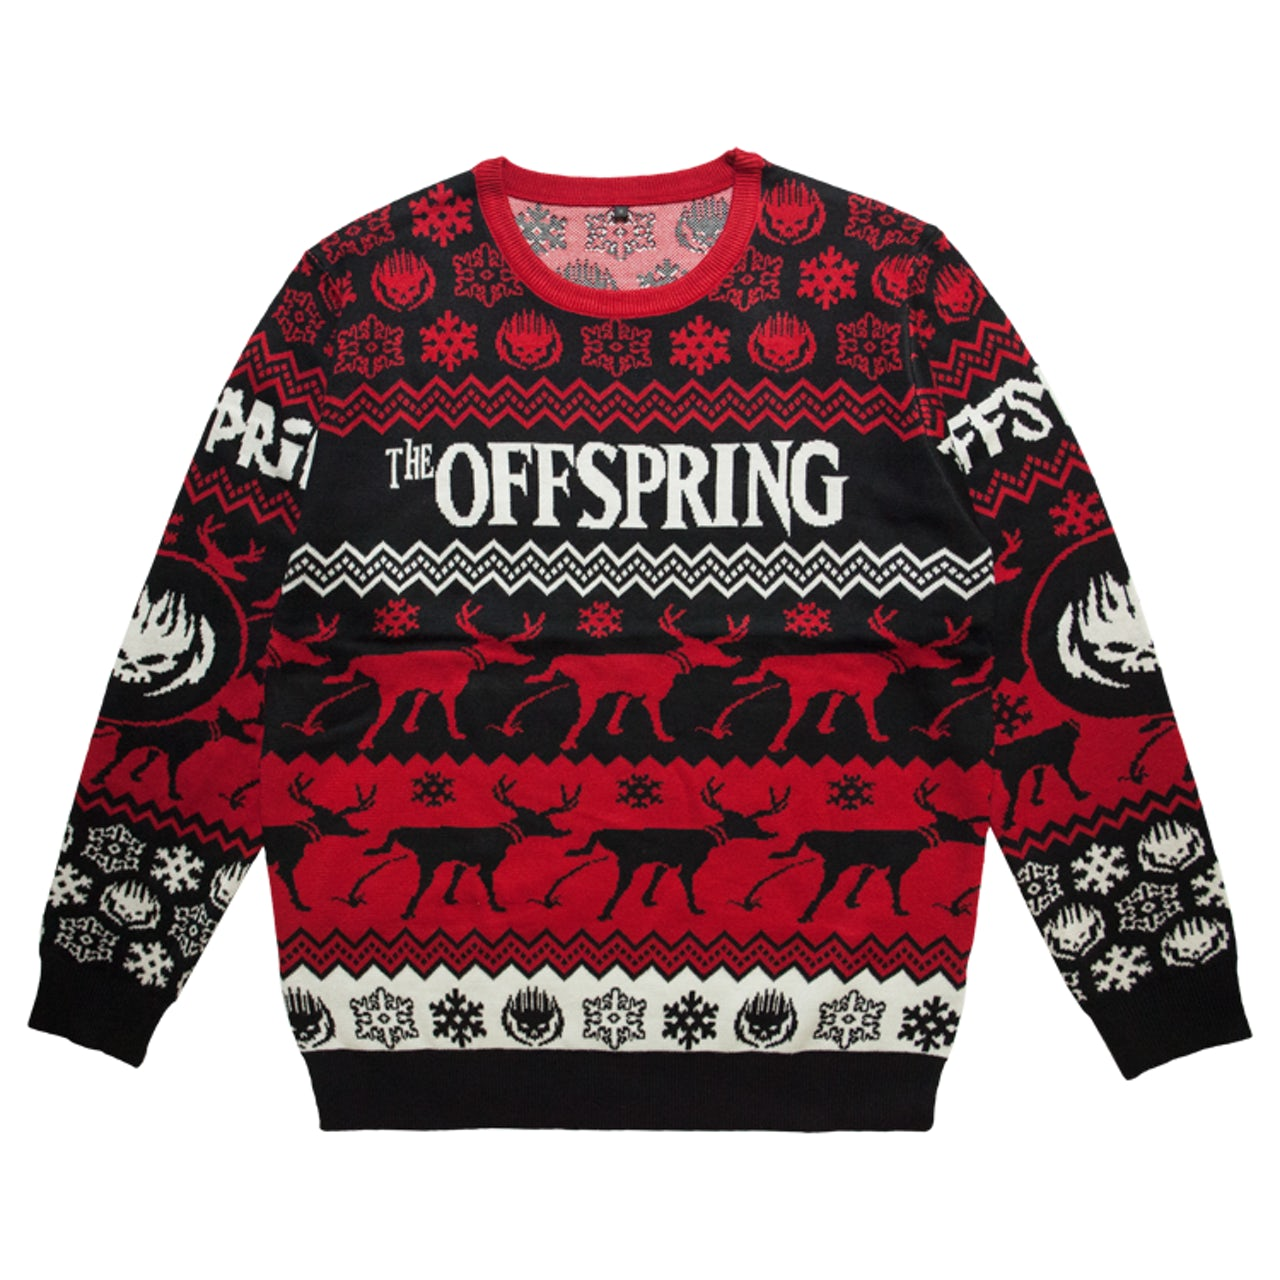 Black Sabbath Christmas Sweater.The Offspring Ugly Christmas Sweater